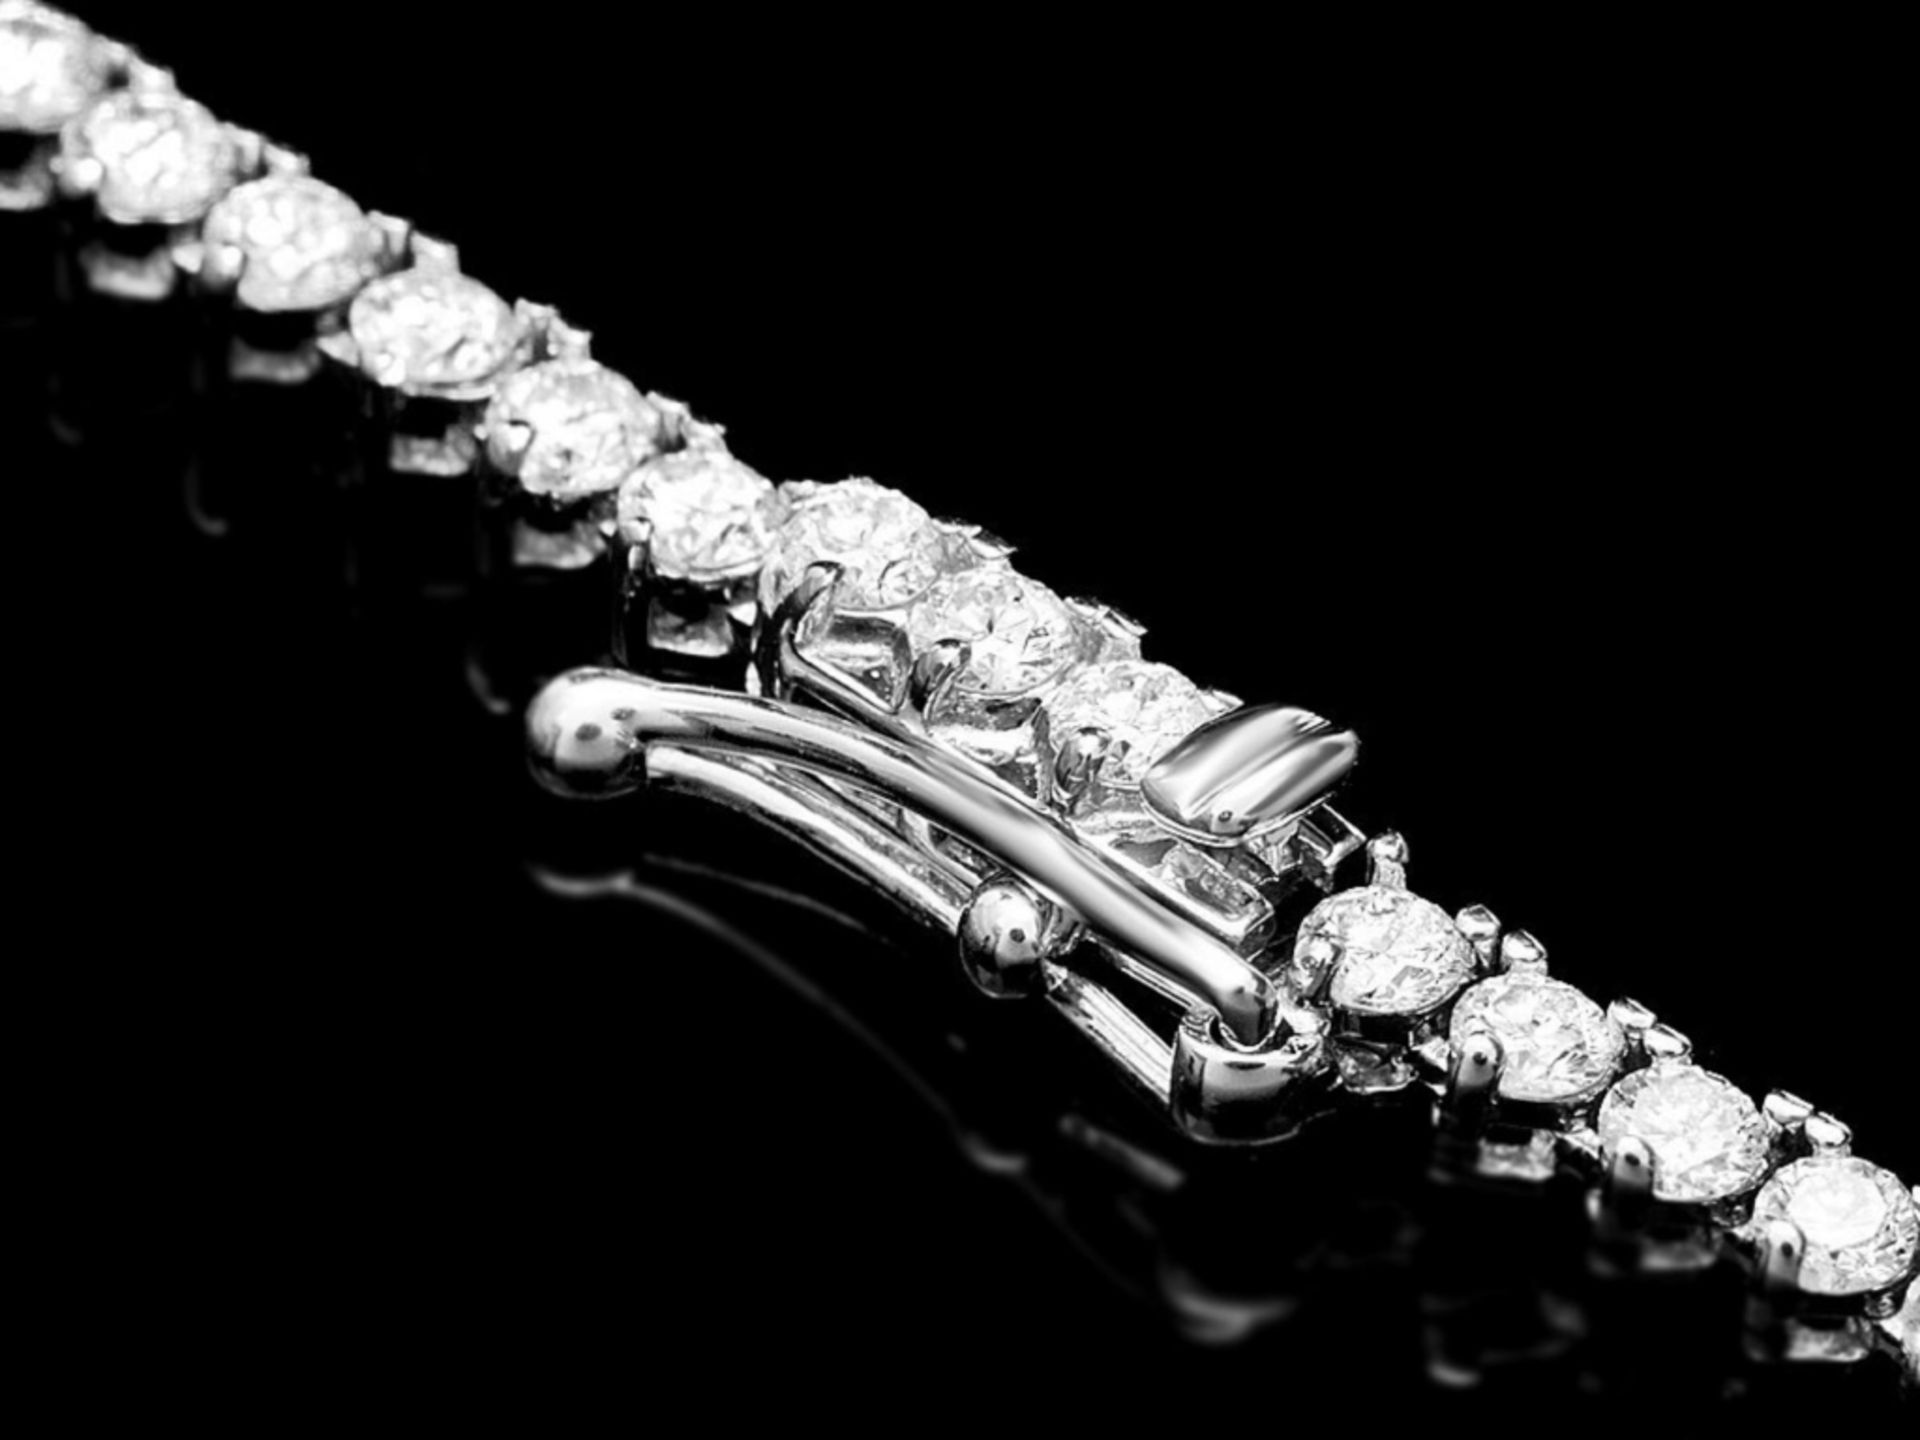 ^18k White Gold 7.00ct Diamond Necklace - Image 2 of 3